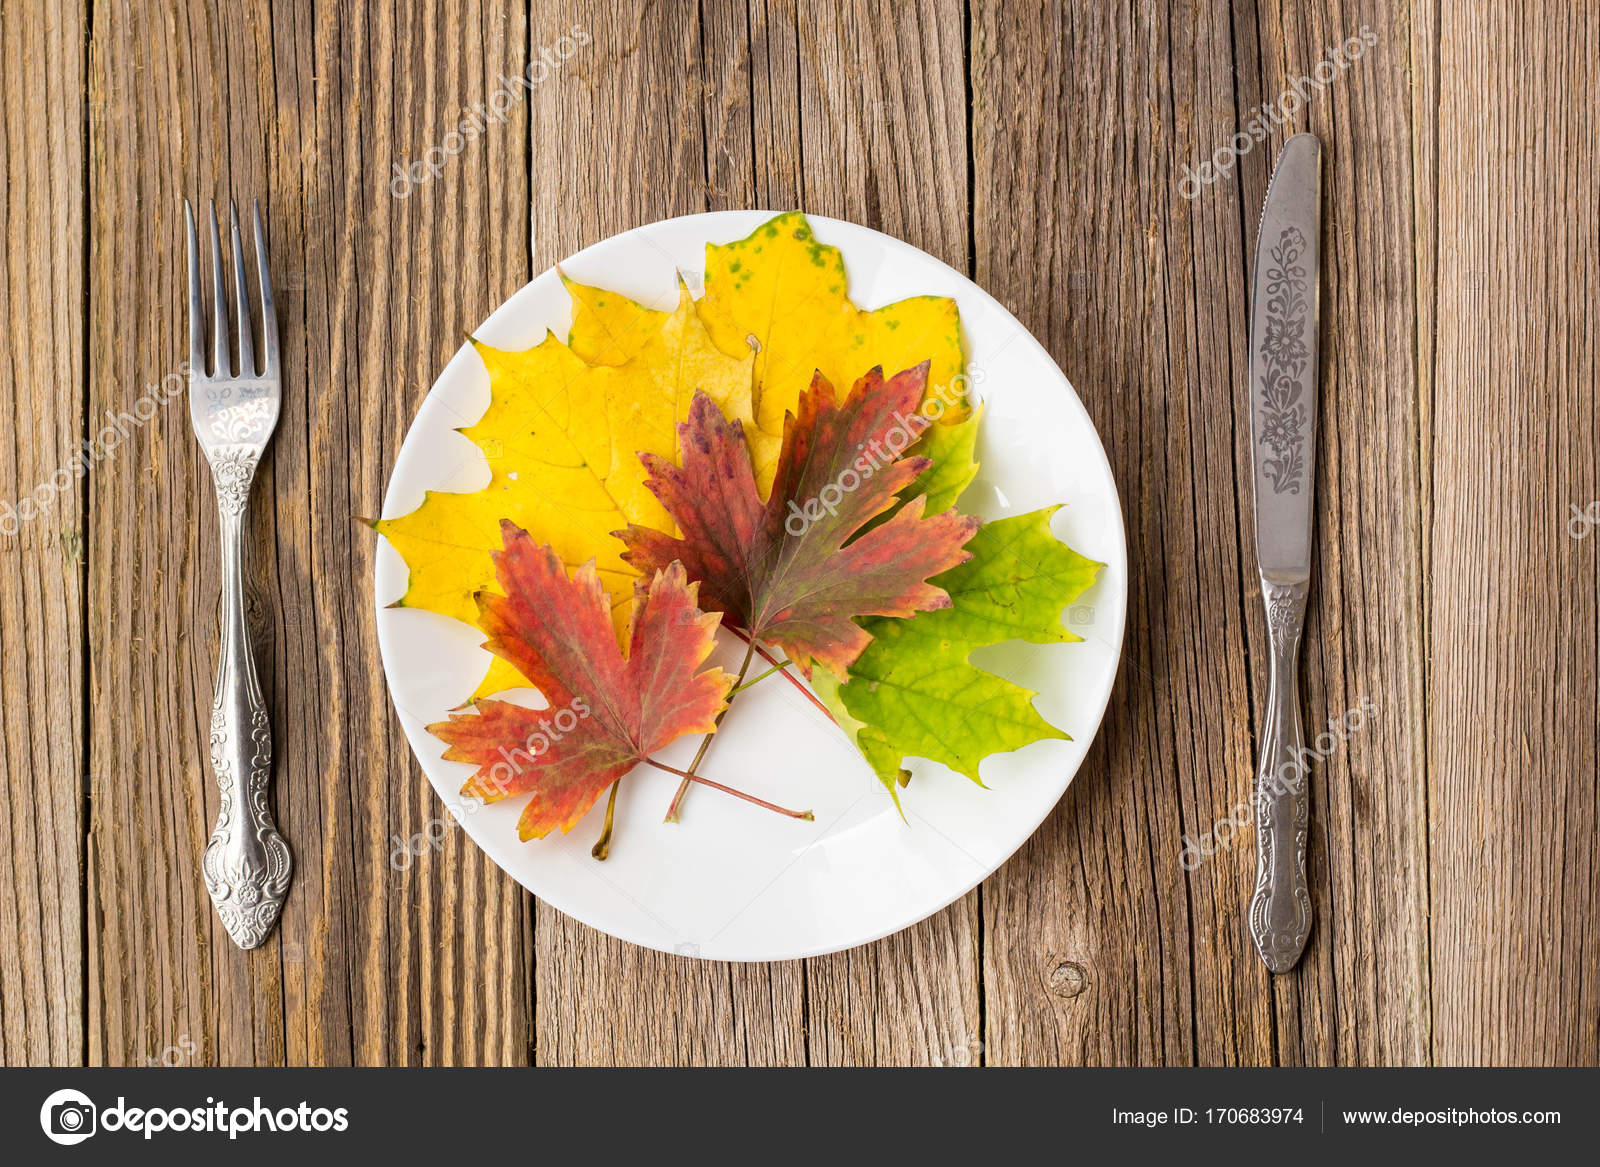 Thanksgiving Dinner Plate With Fork Knife And Leaves On Rustic Wooden Table Background Photo By Dashtik